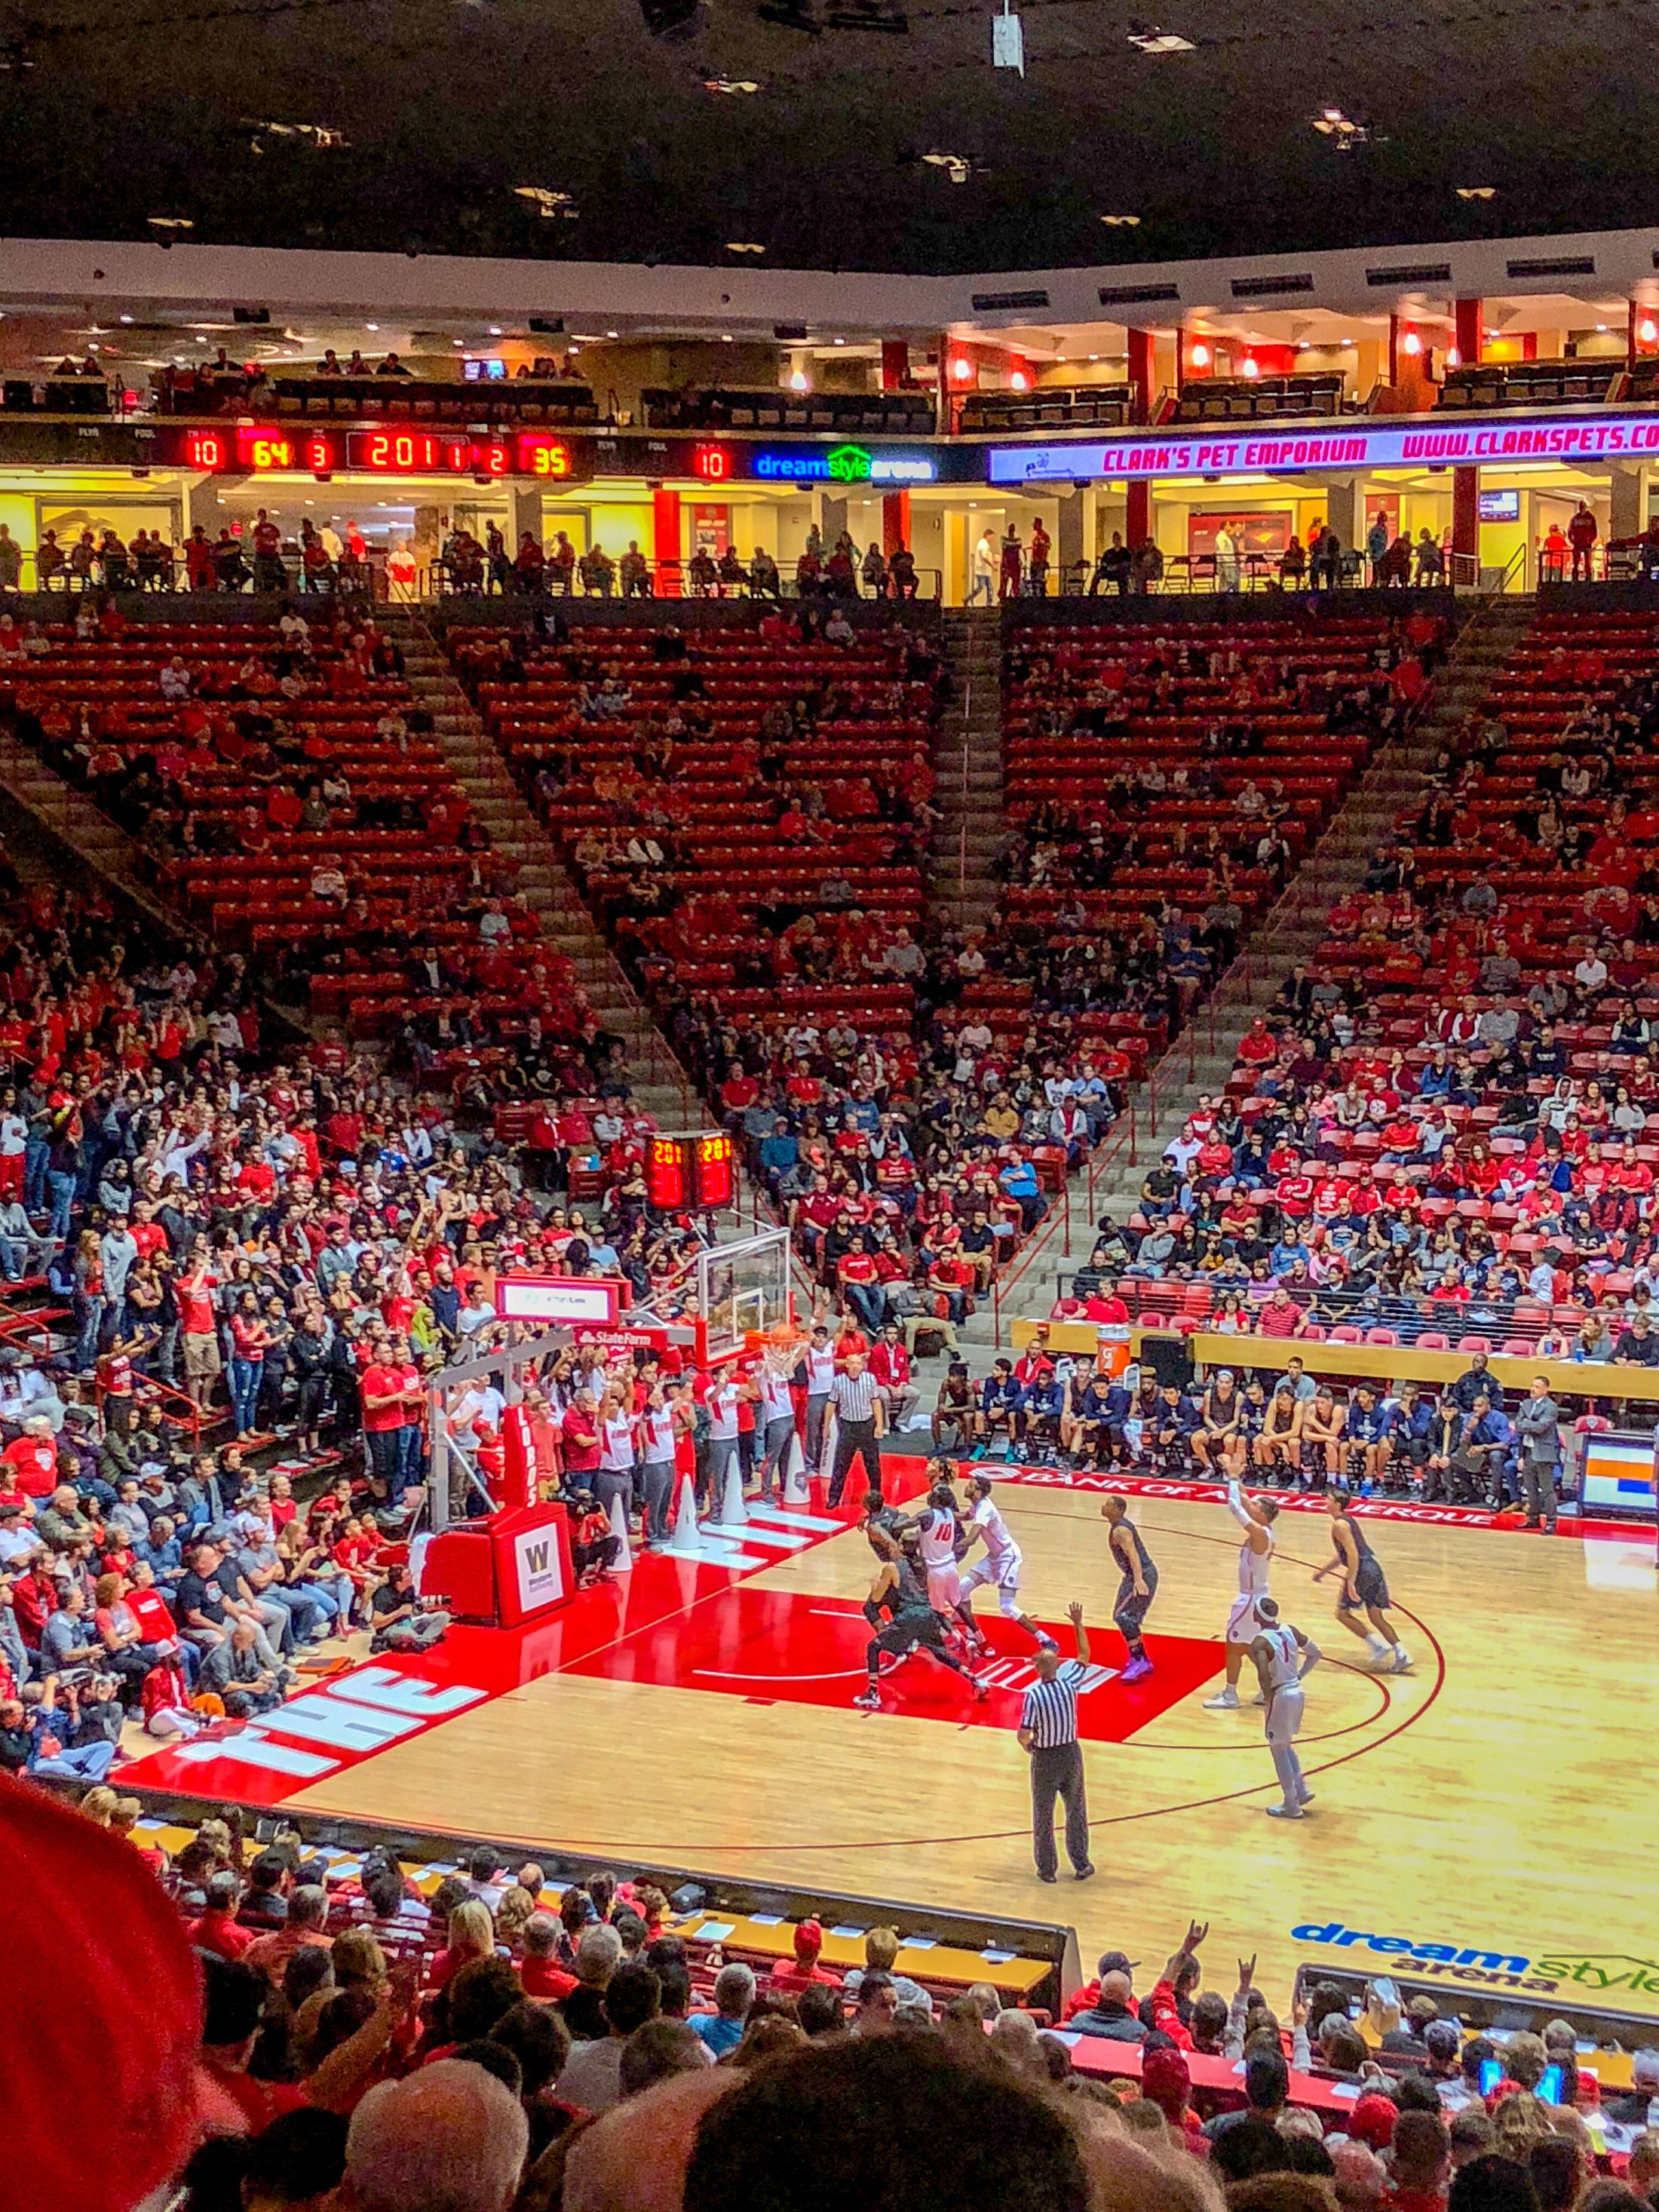 A fun thing to do in Albuquerque is go to a Lobos Men's Basketball game.